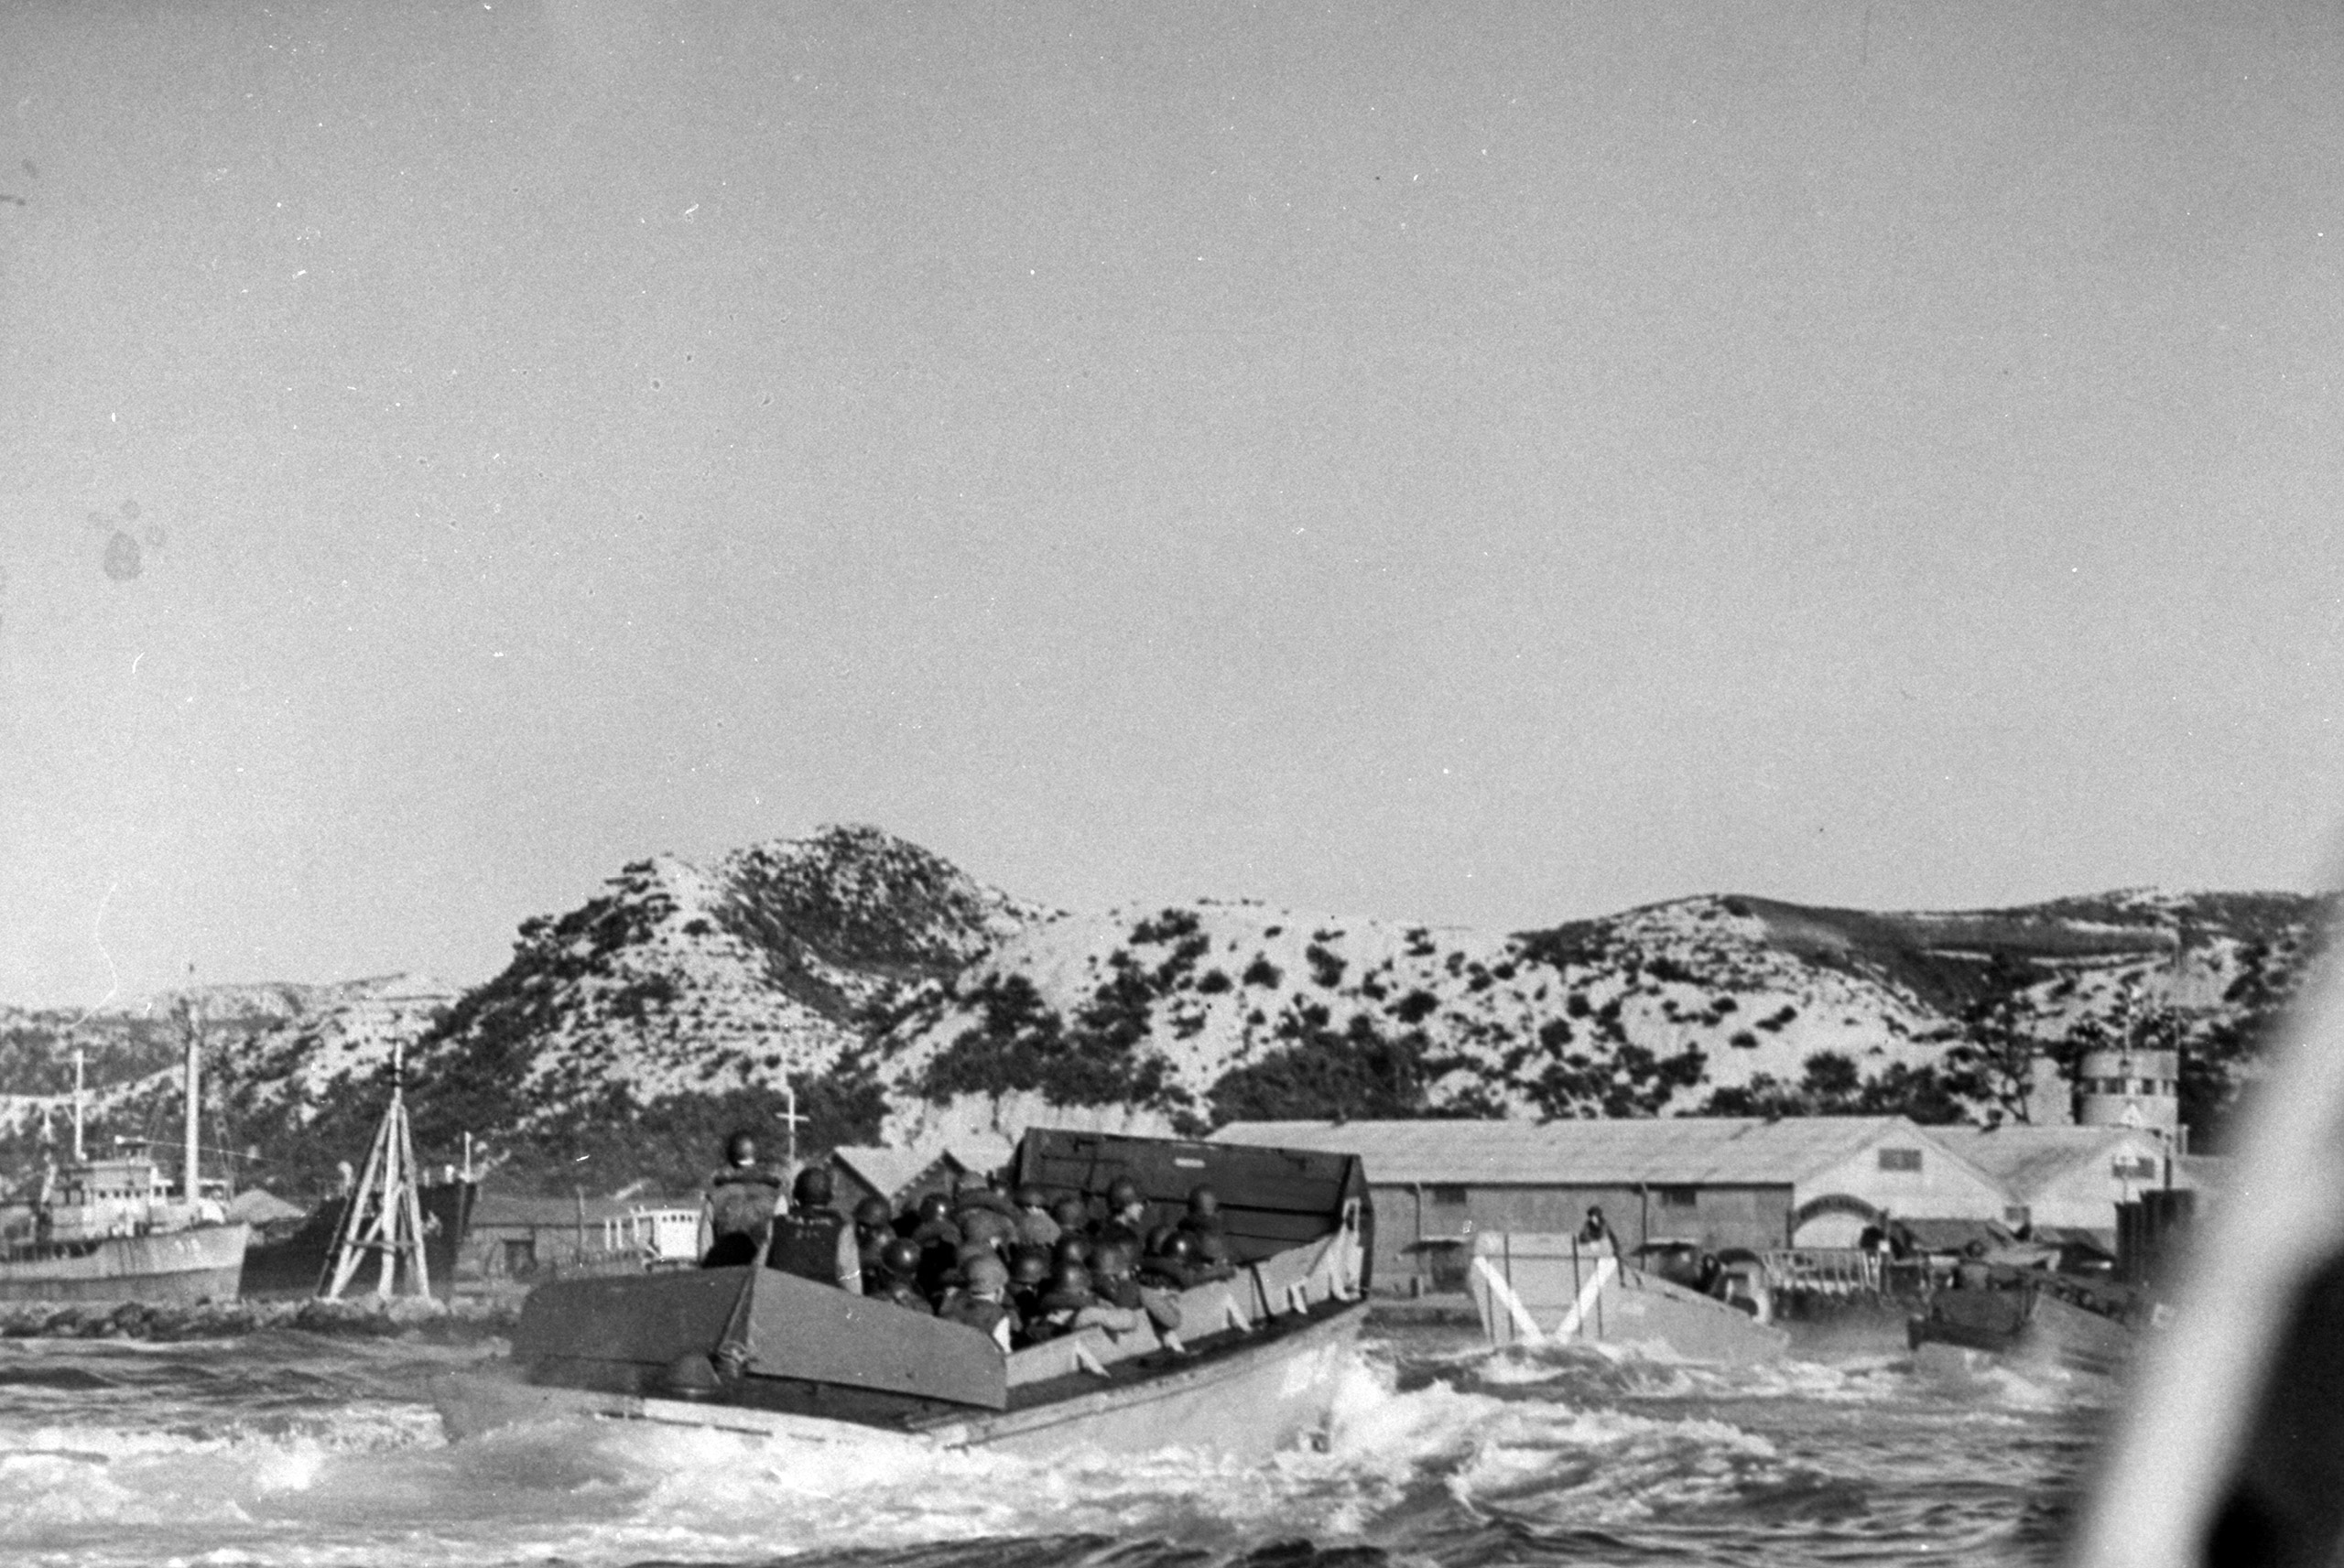 <b>Caption from LIFE.</b> Jammed with men, an LCVP speeds ashore. Lack of opposition was especially fortunate since task force was in no shape for sharply contested beachhead.